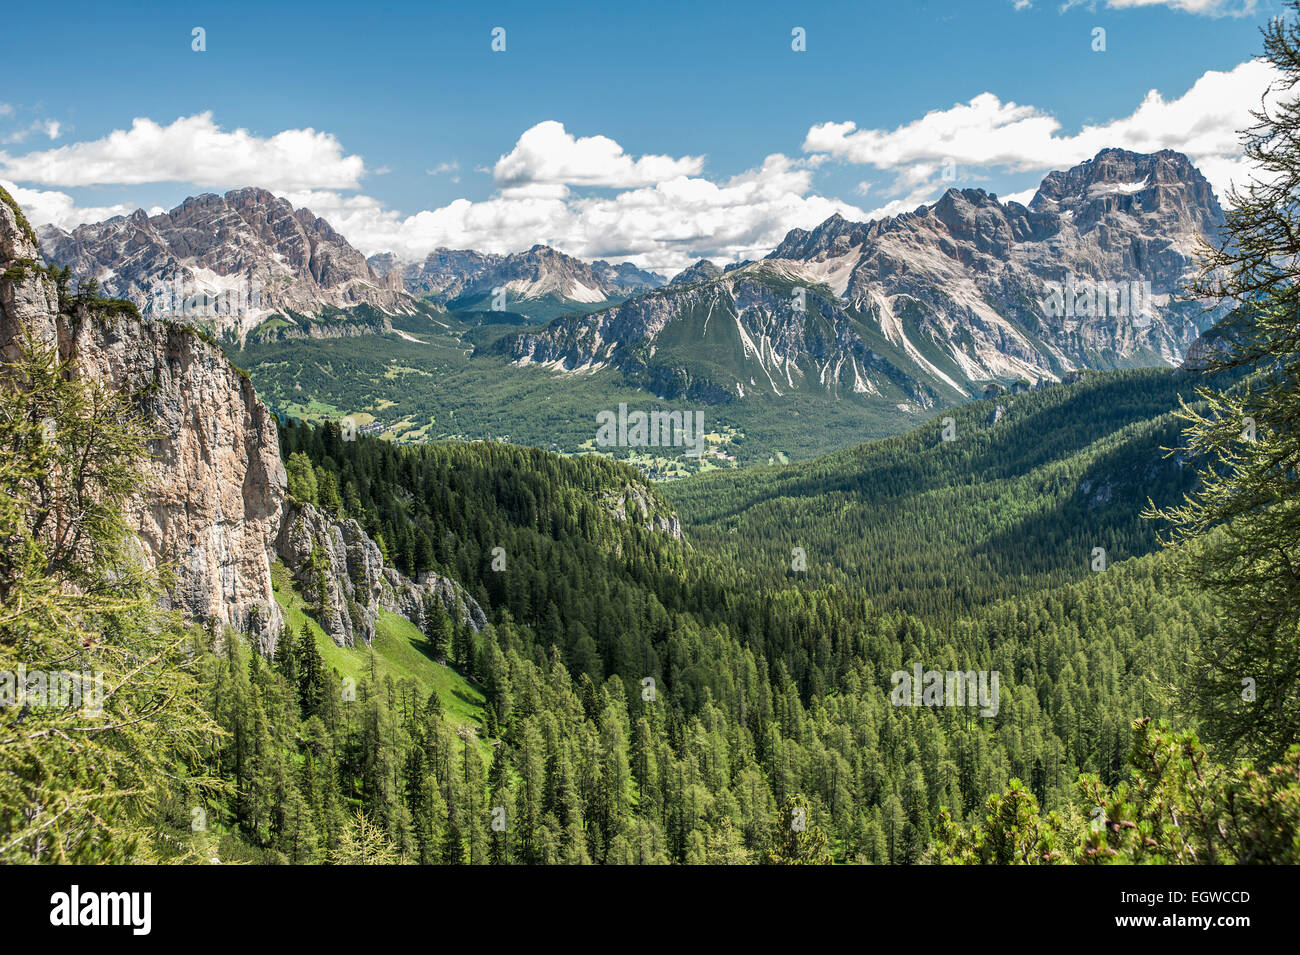 Mountain landscape with spruce forests near Cortina d'Ampezzo, view from the 5 Torri Des-Alpes-Areal - Stock Image